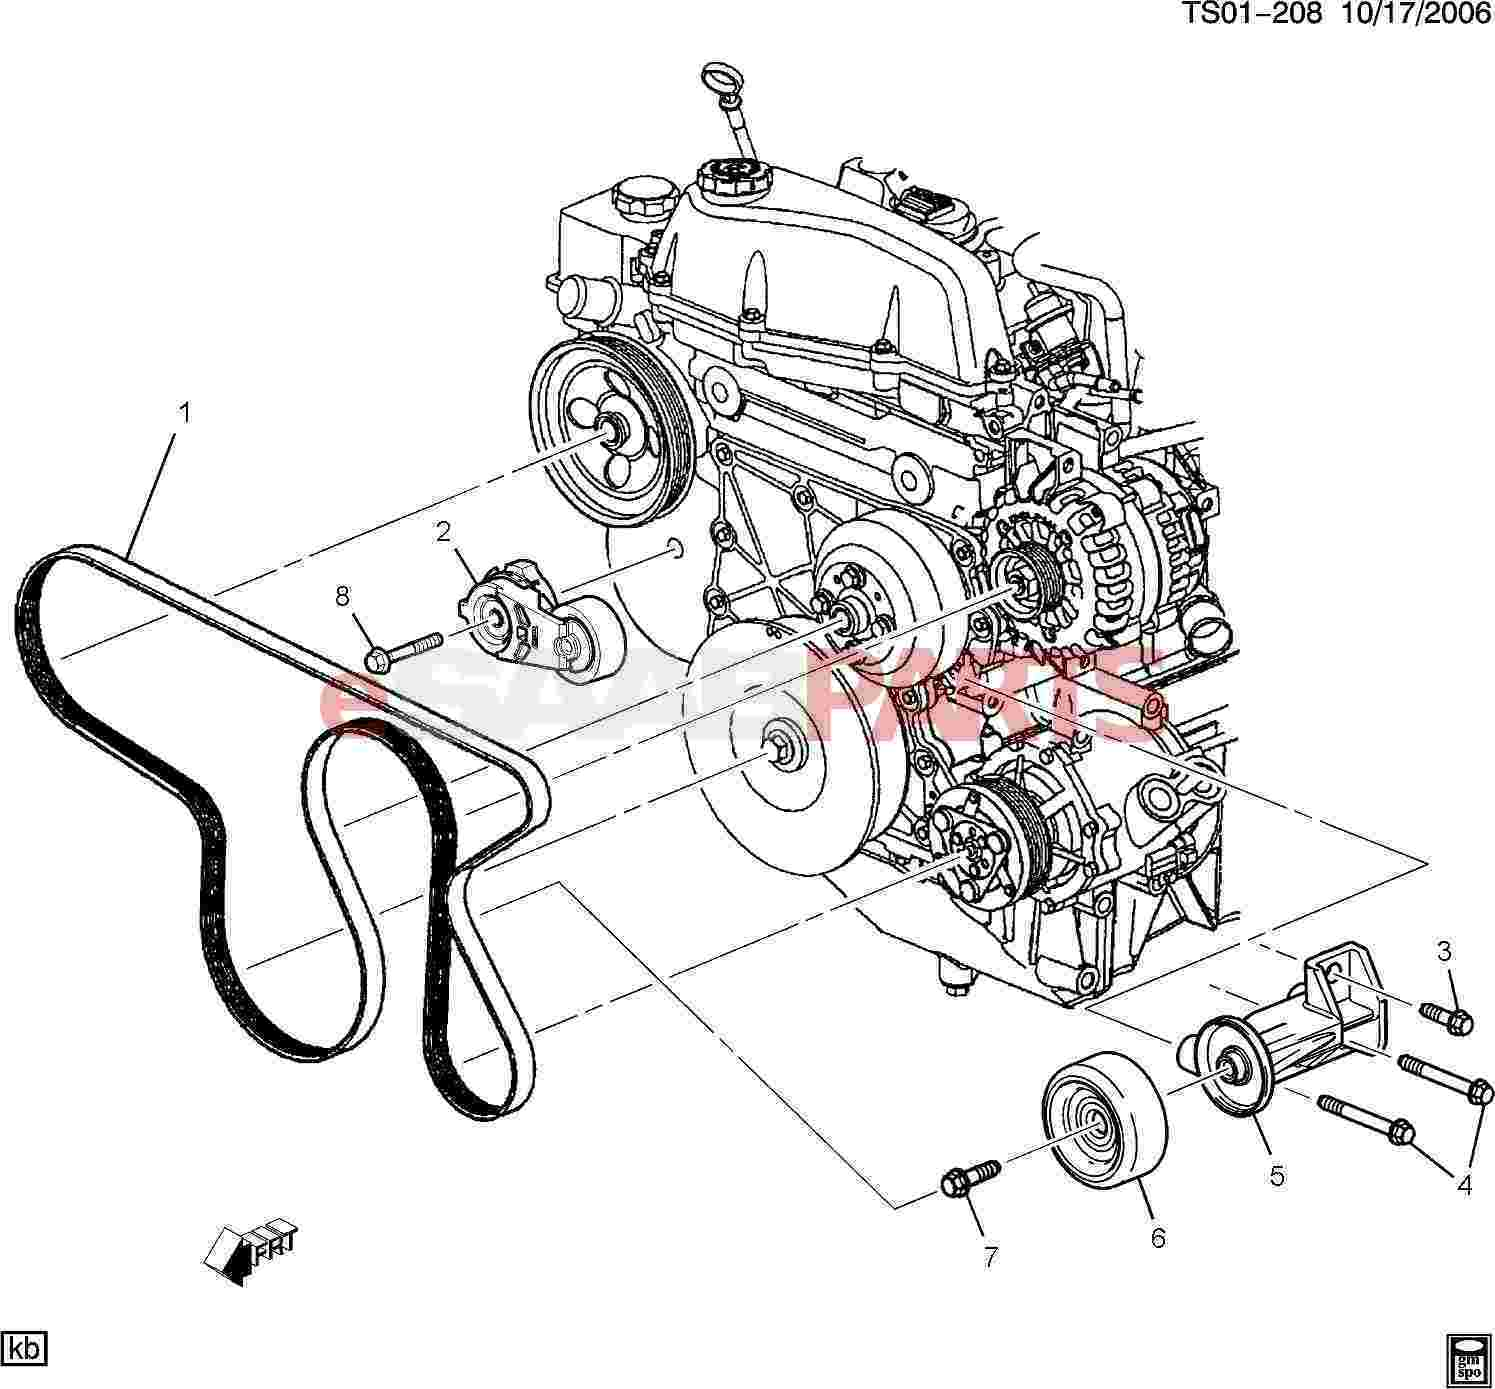 2003 Chevy Trailblazer Engine Diagram